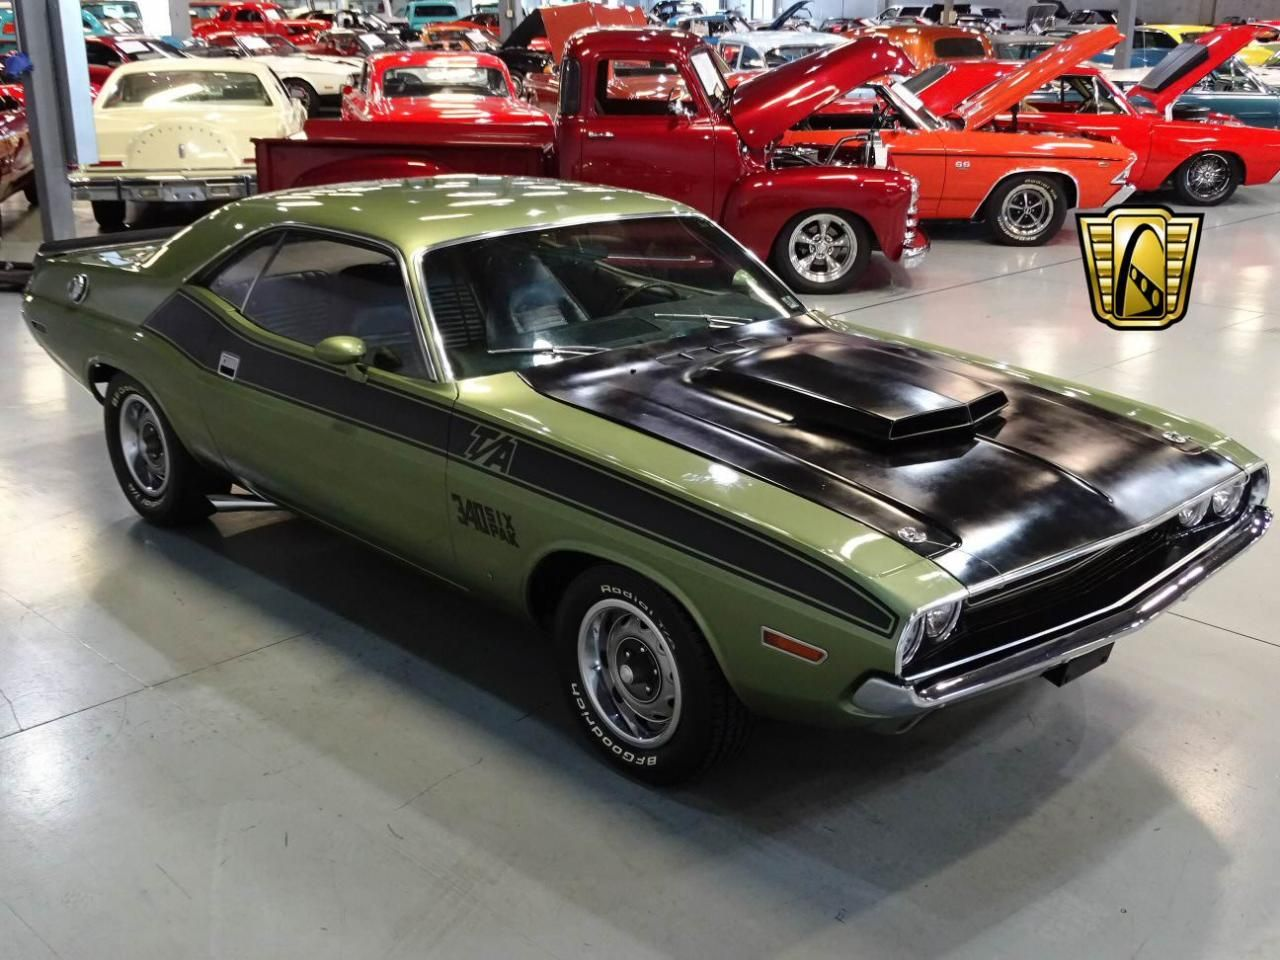 For sale in our Orlando, Florida showroom is a Green 1970 Dodge ...